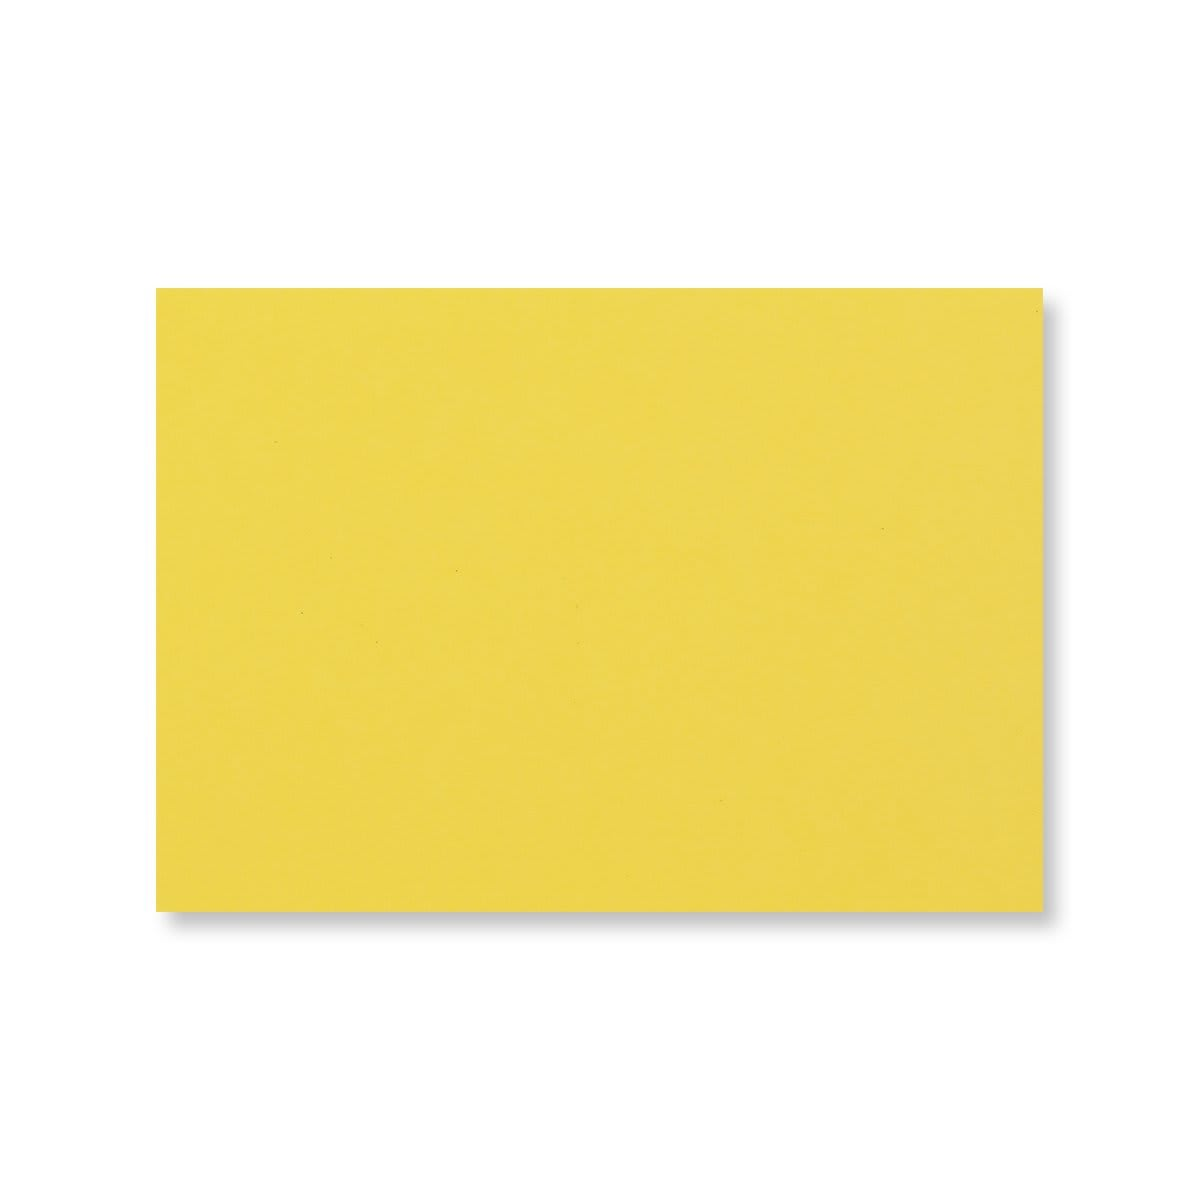 C6 MID YELLOW PEEL AND SEAL ENVELOPES